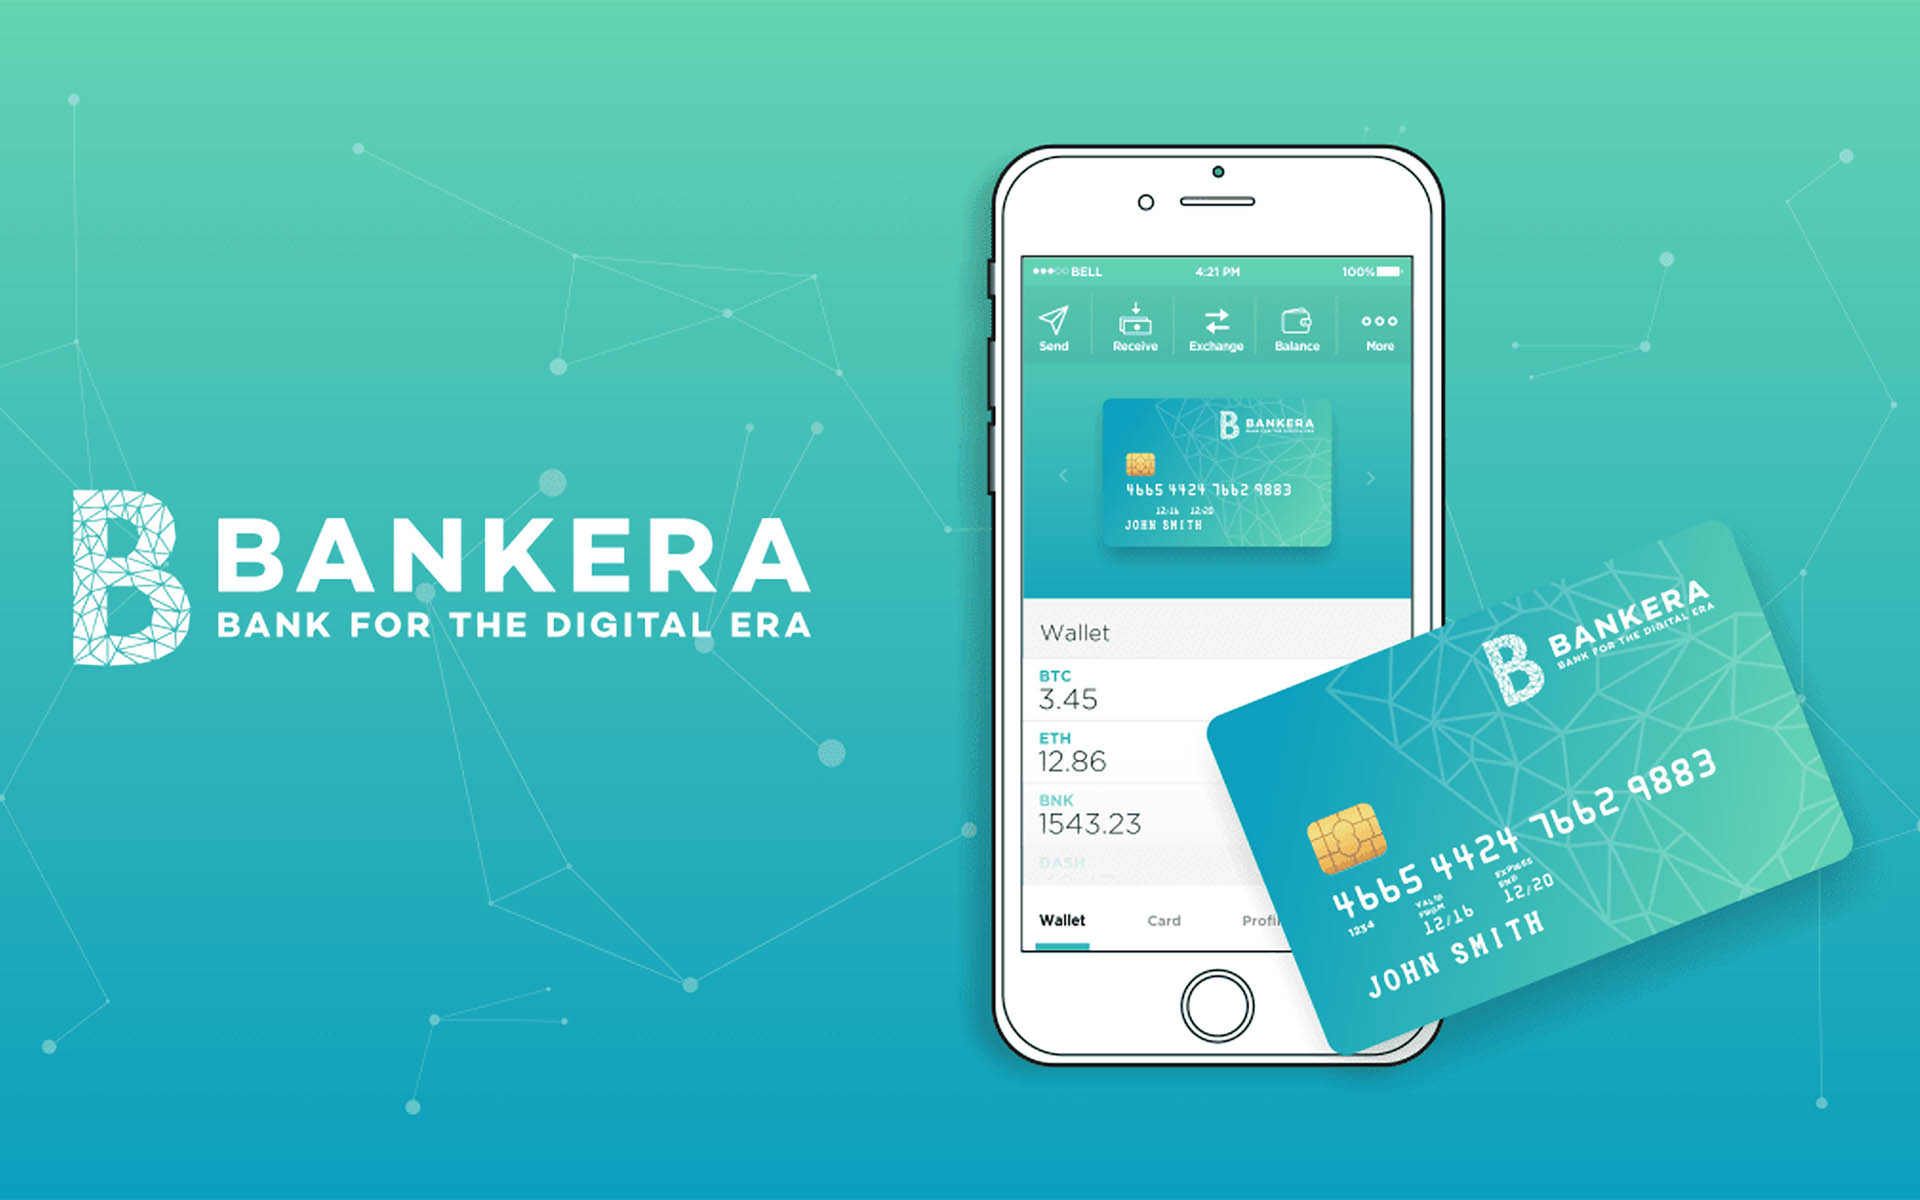 Bankera Blockchain Based Regulated Bank Announces Crowdsale, Tokens Available on SpectroCoin